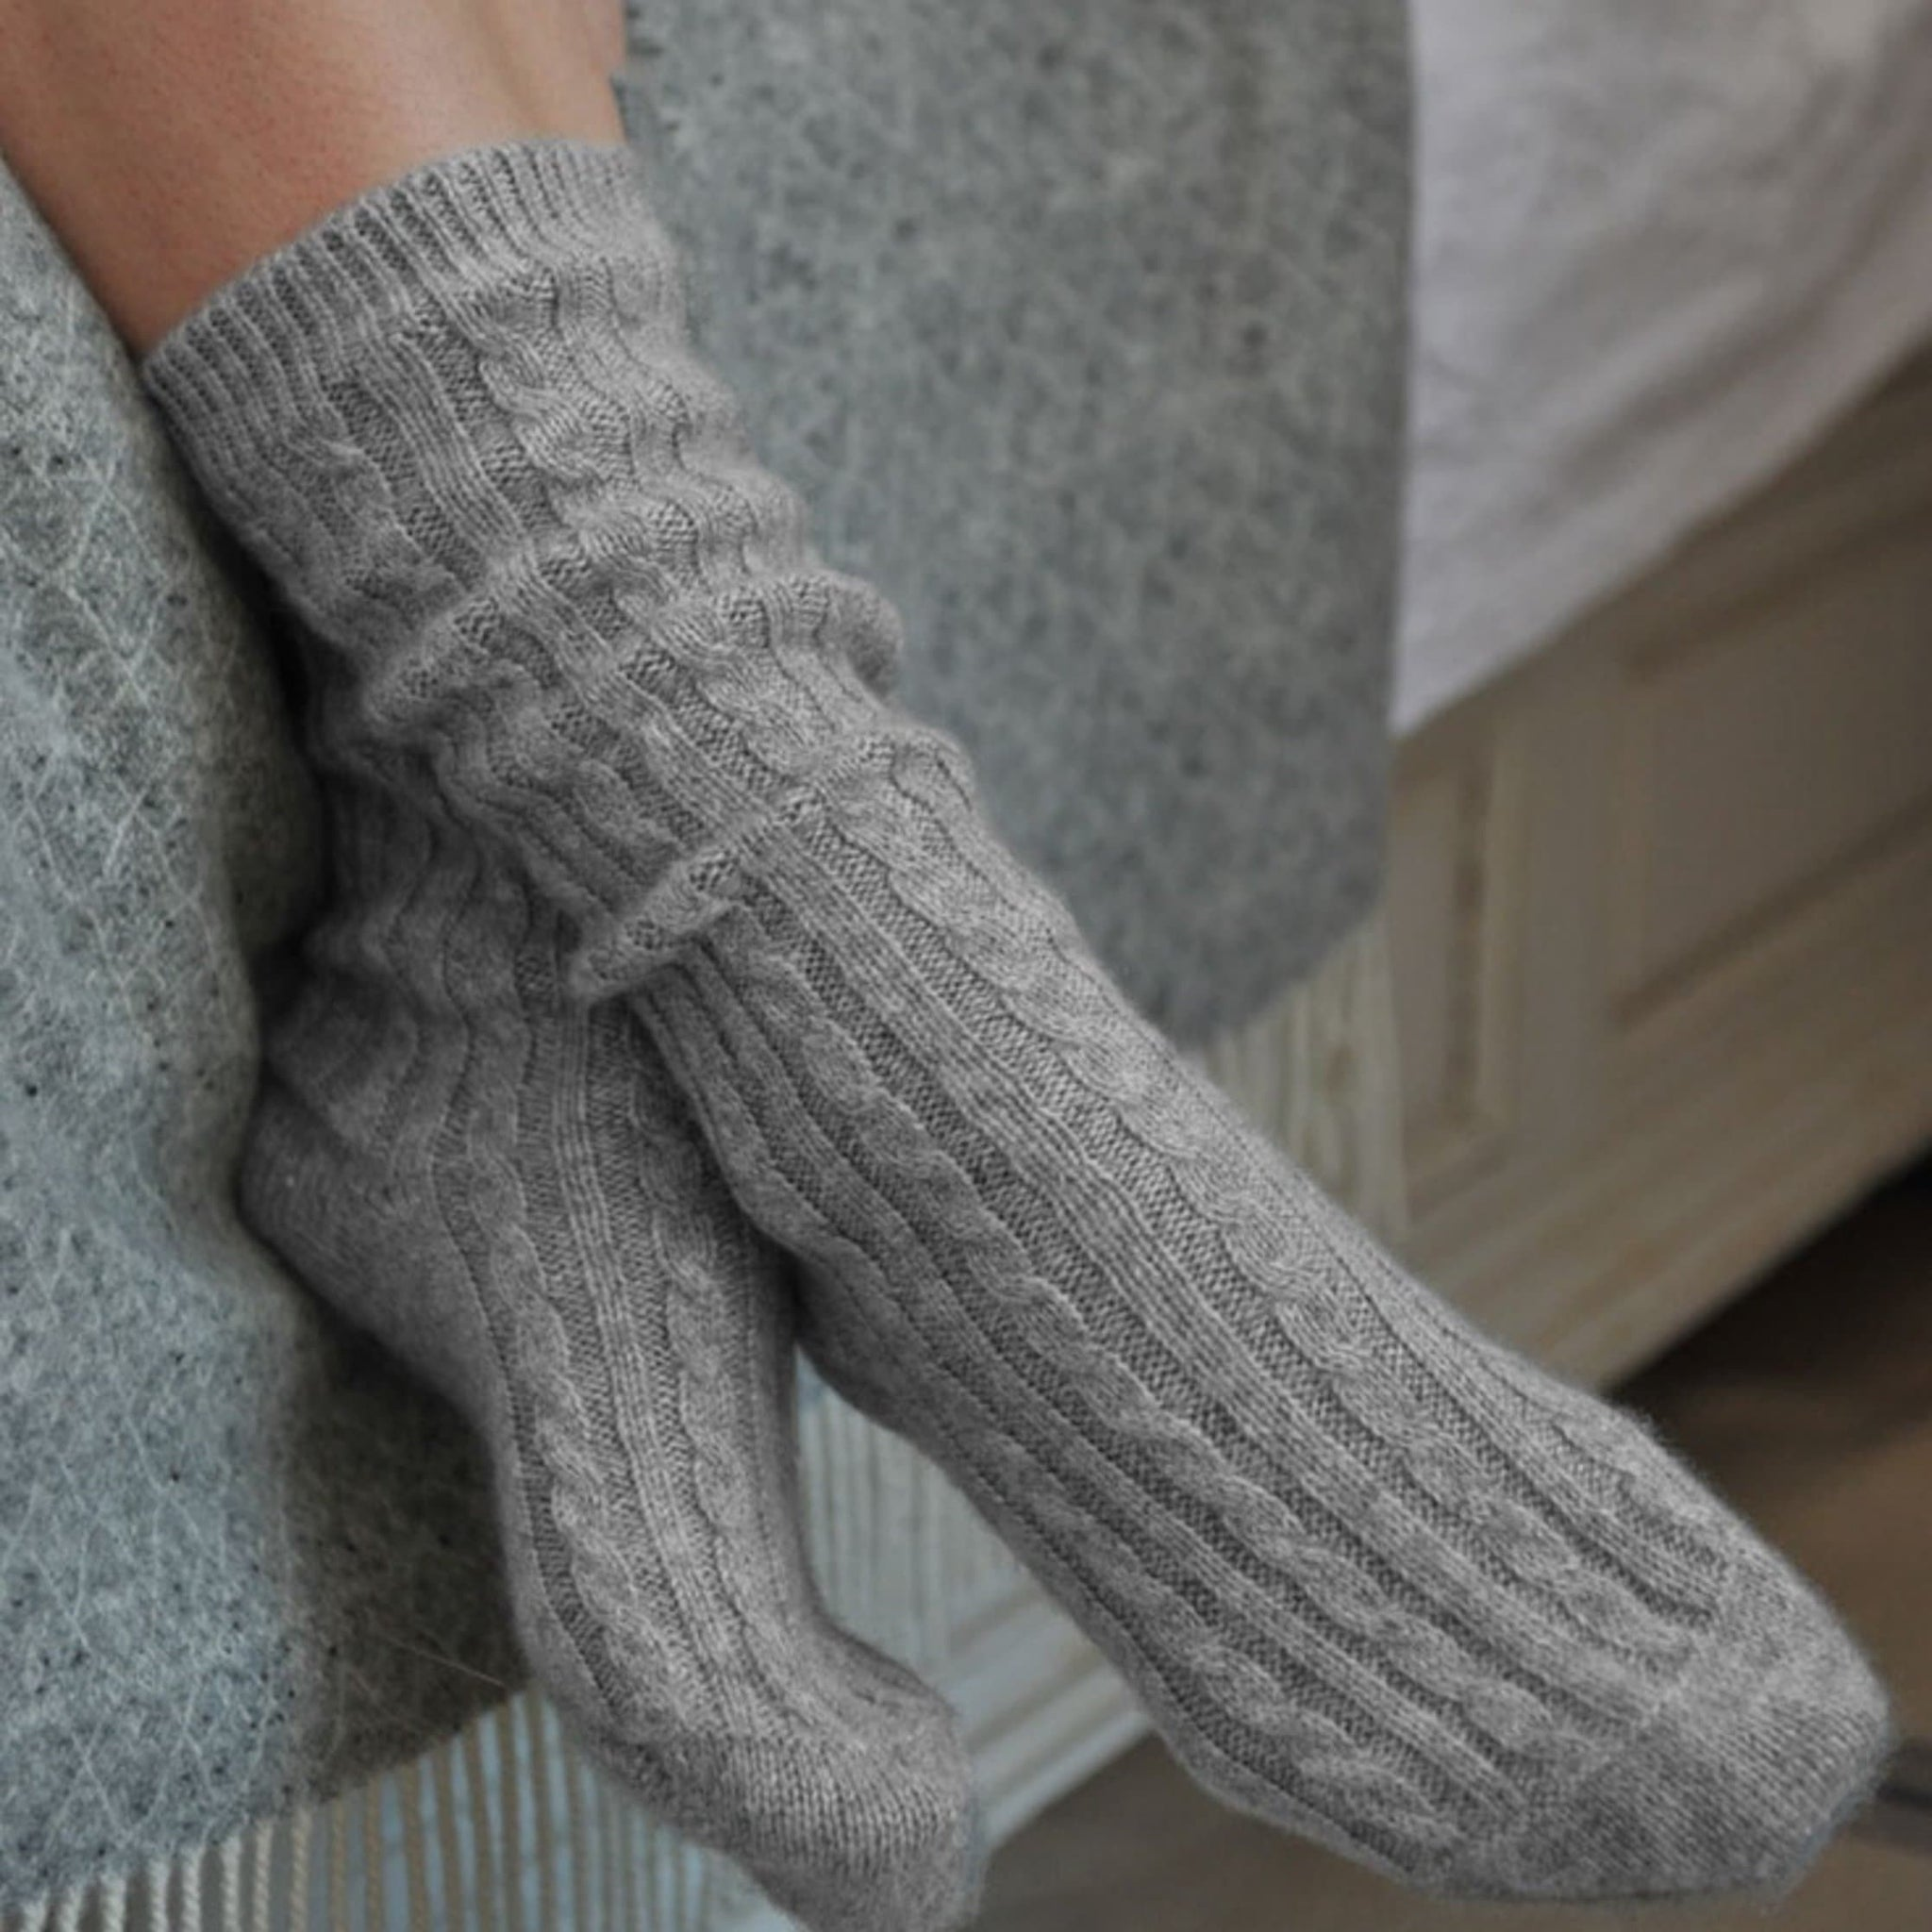 Gathered By TCO 100% Cashmere Socks